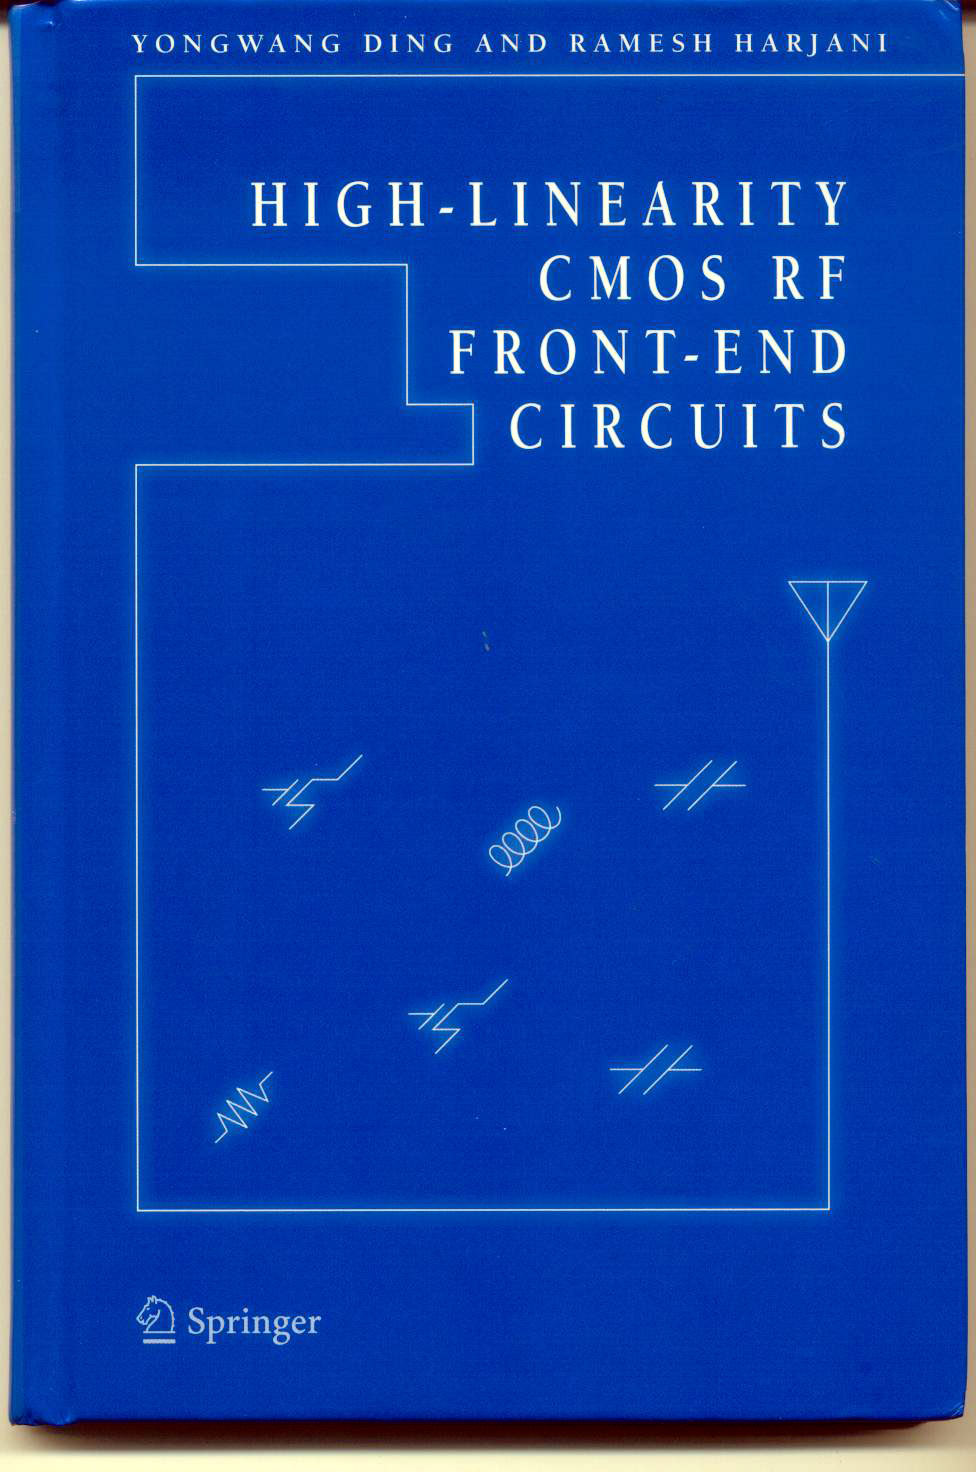 Books And Book Chapter Harjanis Analog Team Integrated Circuits Free Pdf Bookstore High Linearity Cmos Rf Front End Yongwang Ding Ramesh Harjani Springer Kluwer Publishers 2004 Isbn 0 387 23801 8